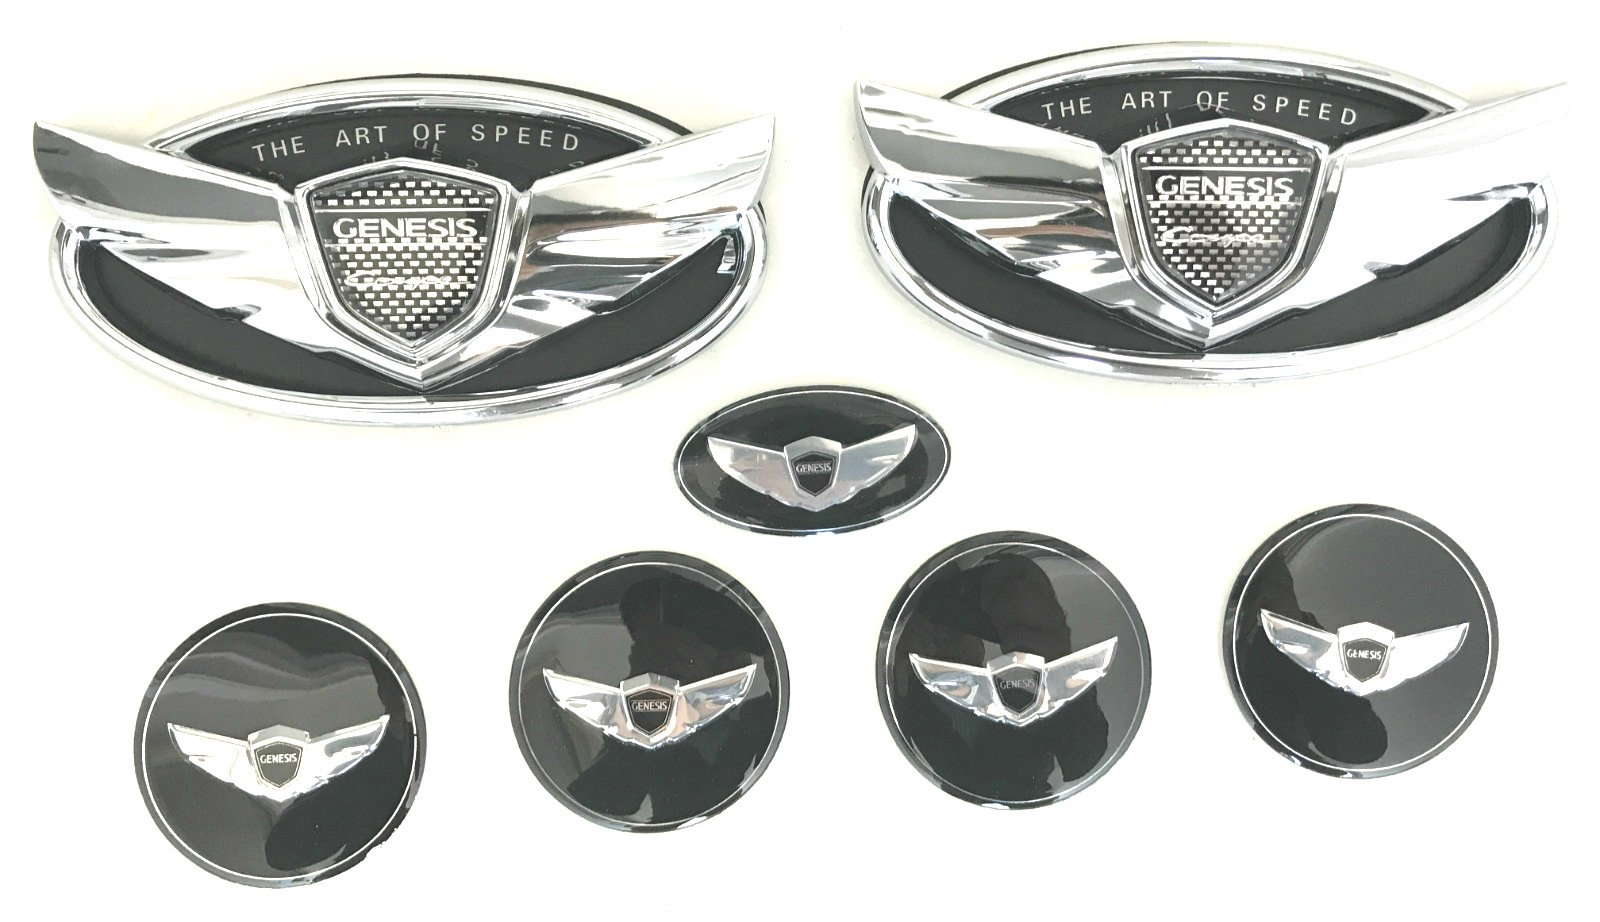 """Exotic Store 7 Pieces 2010-2017 Fit for Hyundai Genesis """"ART OF SPEED""""Coupe Chrome Black WING Logo Front+ Trunk+ Steering wheel+ Rim center Caps Stickers TURBO Kit Emblem Badges (CHROME)"""